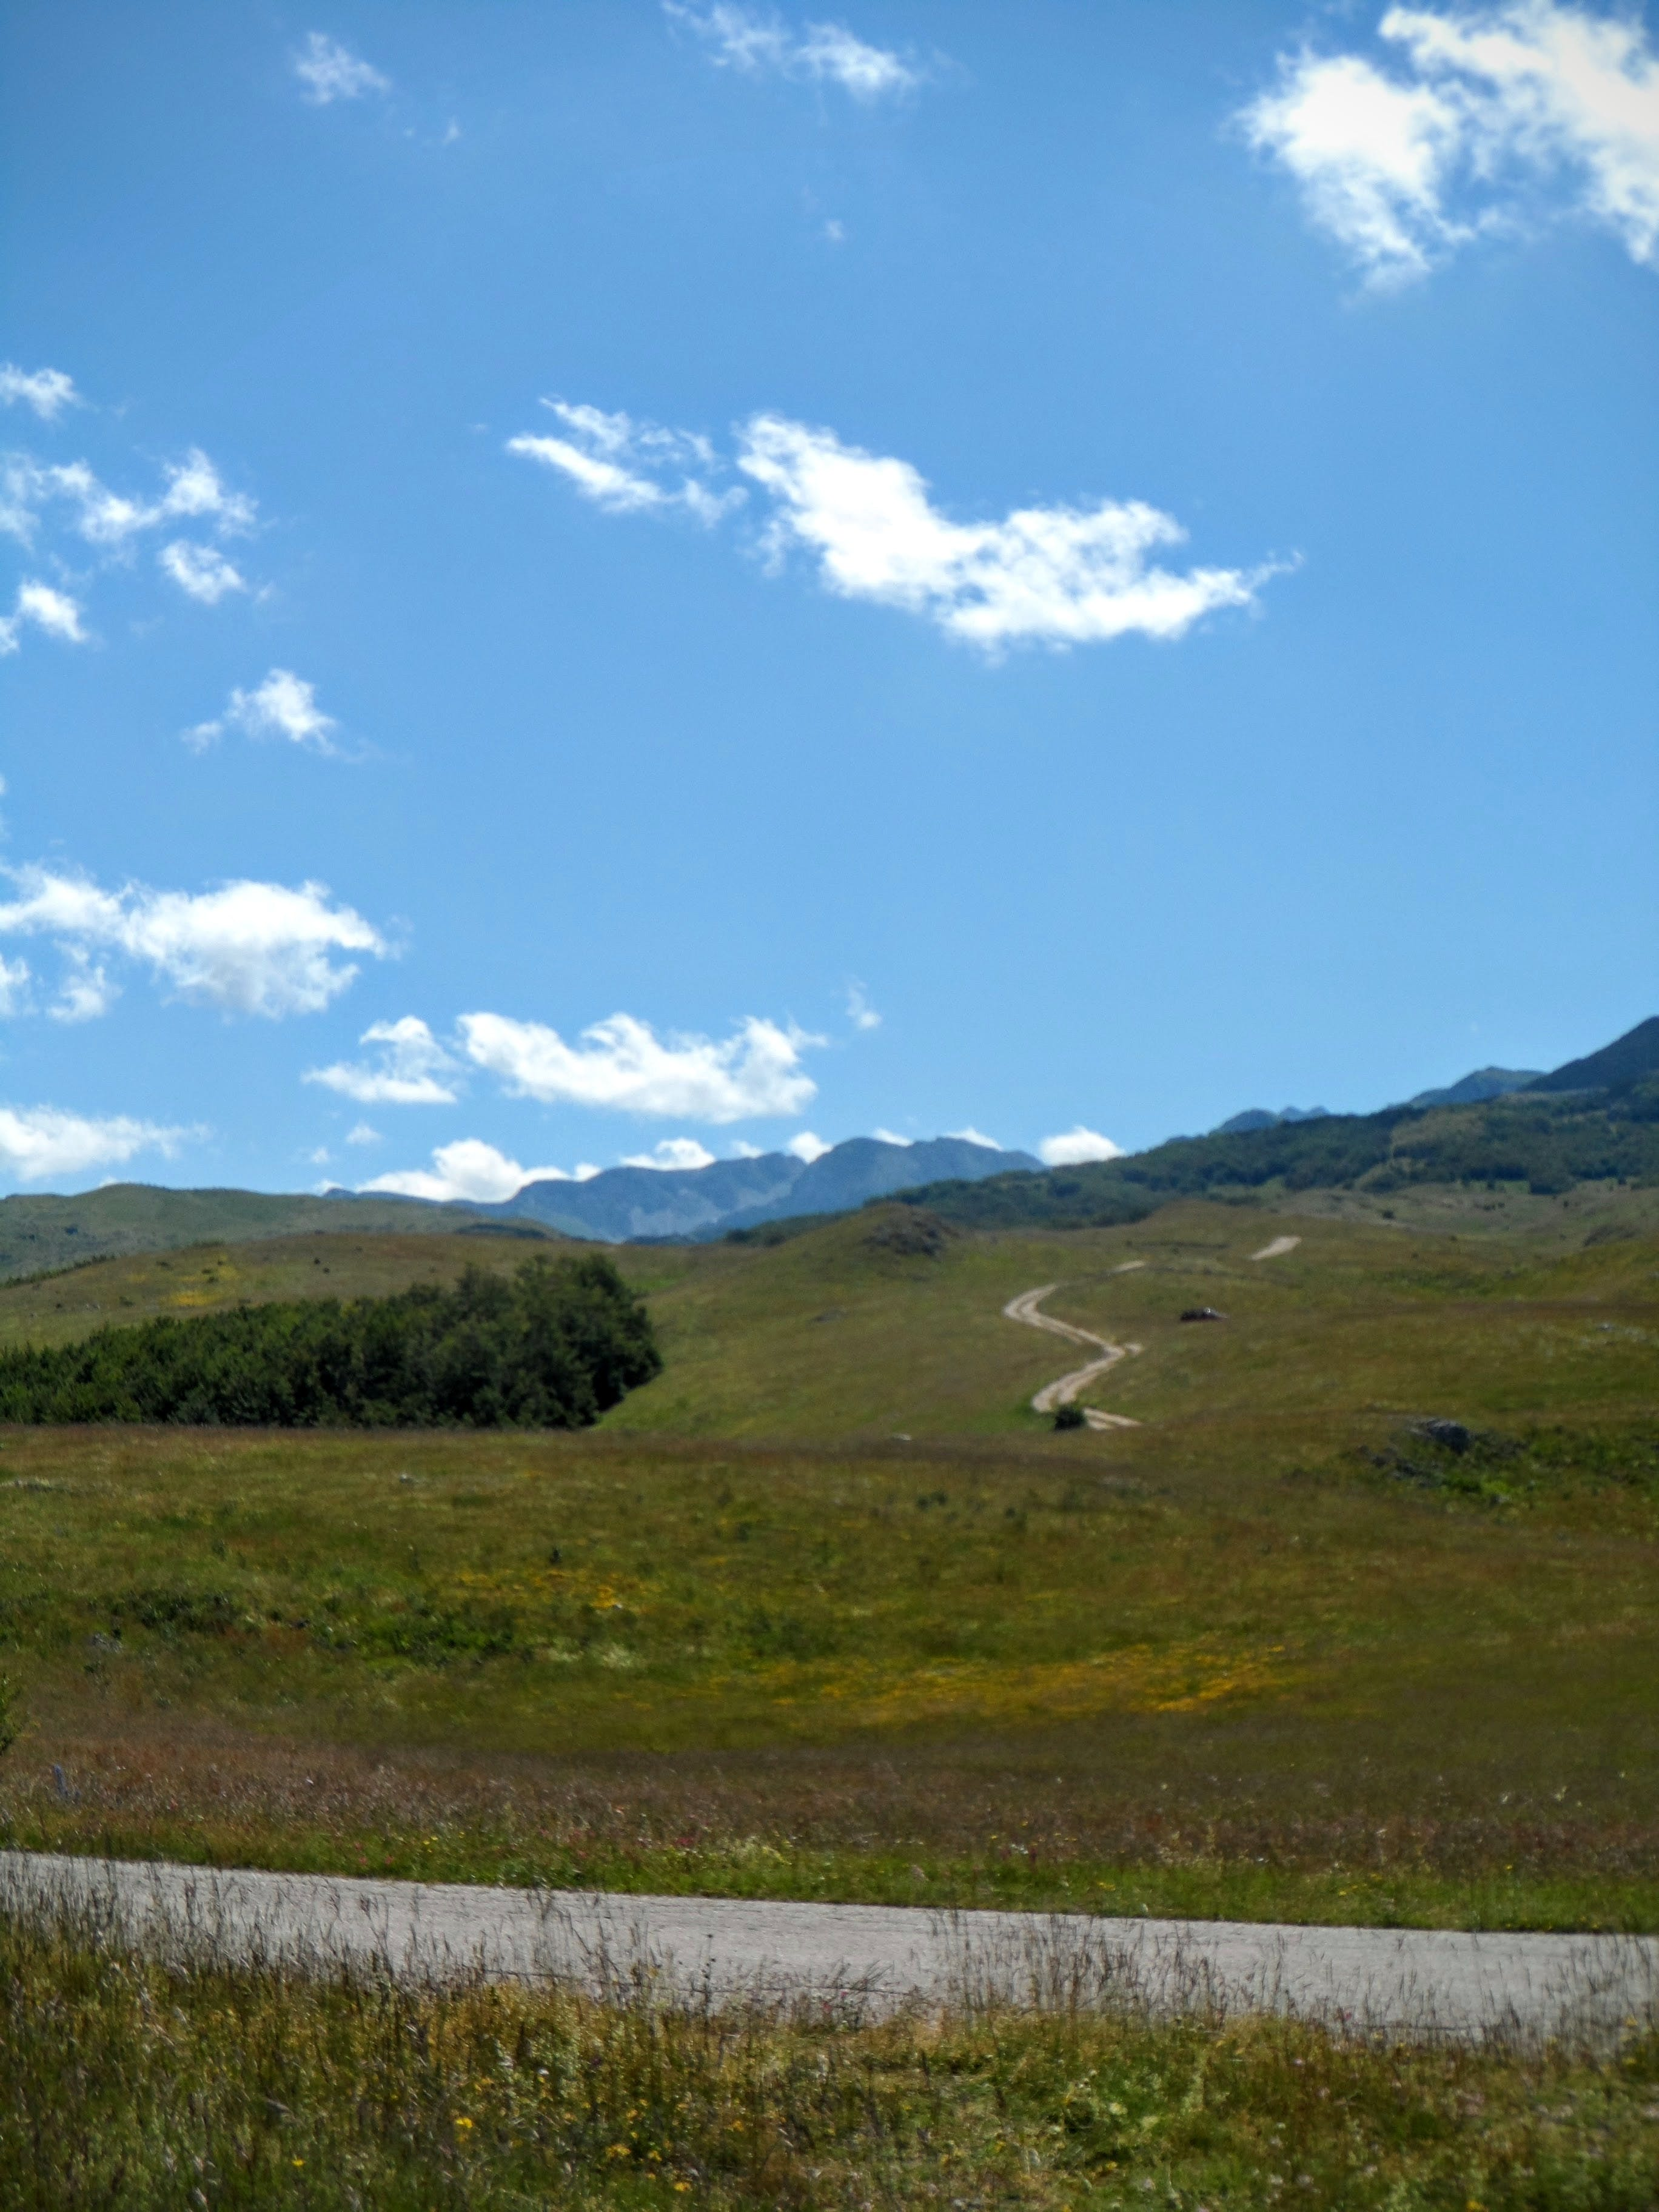 Free stock photo of blue sky, grass, mountain, road